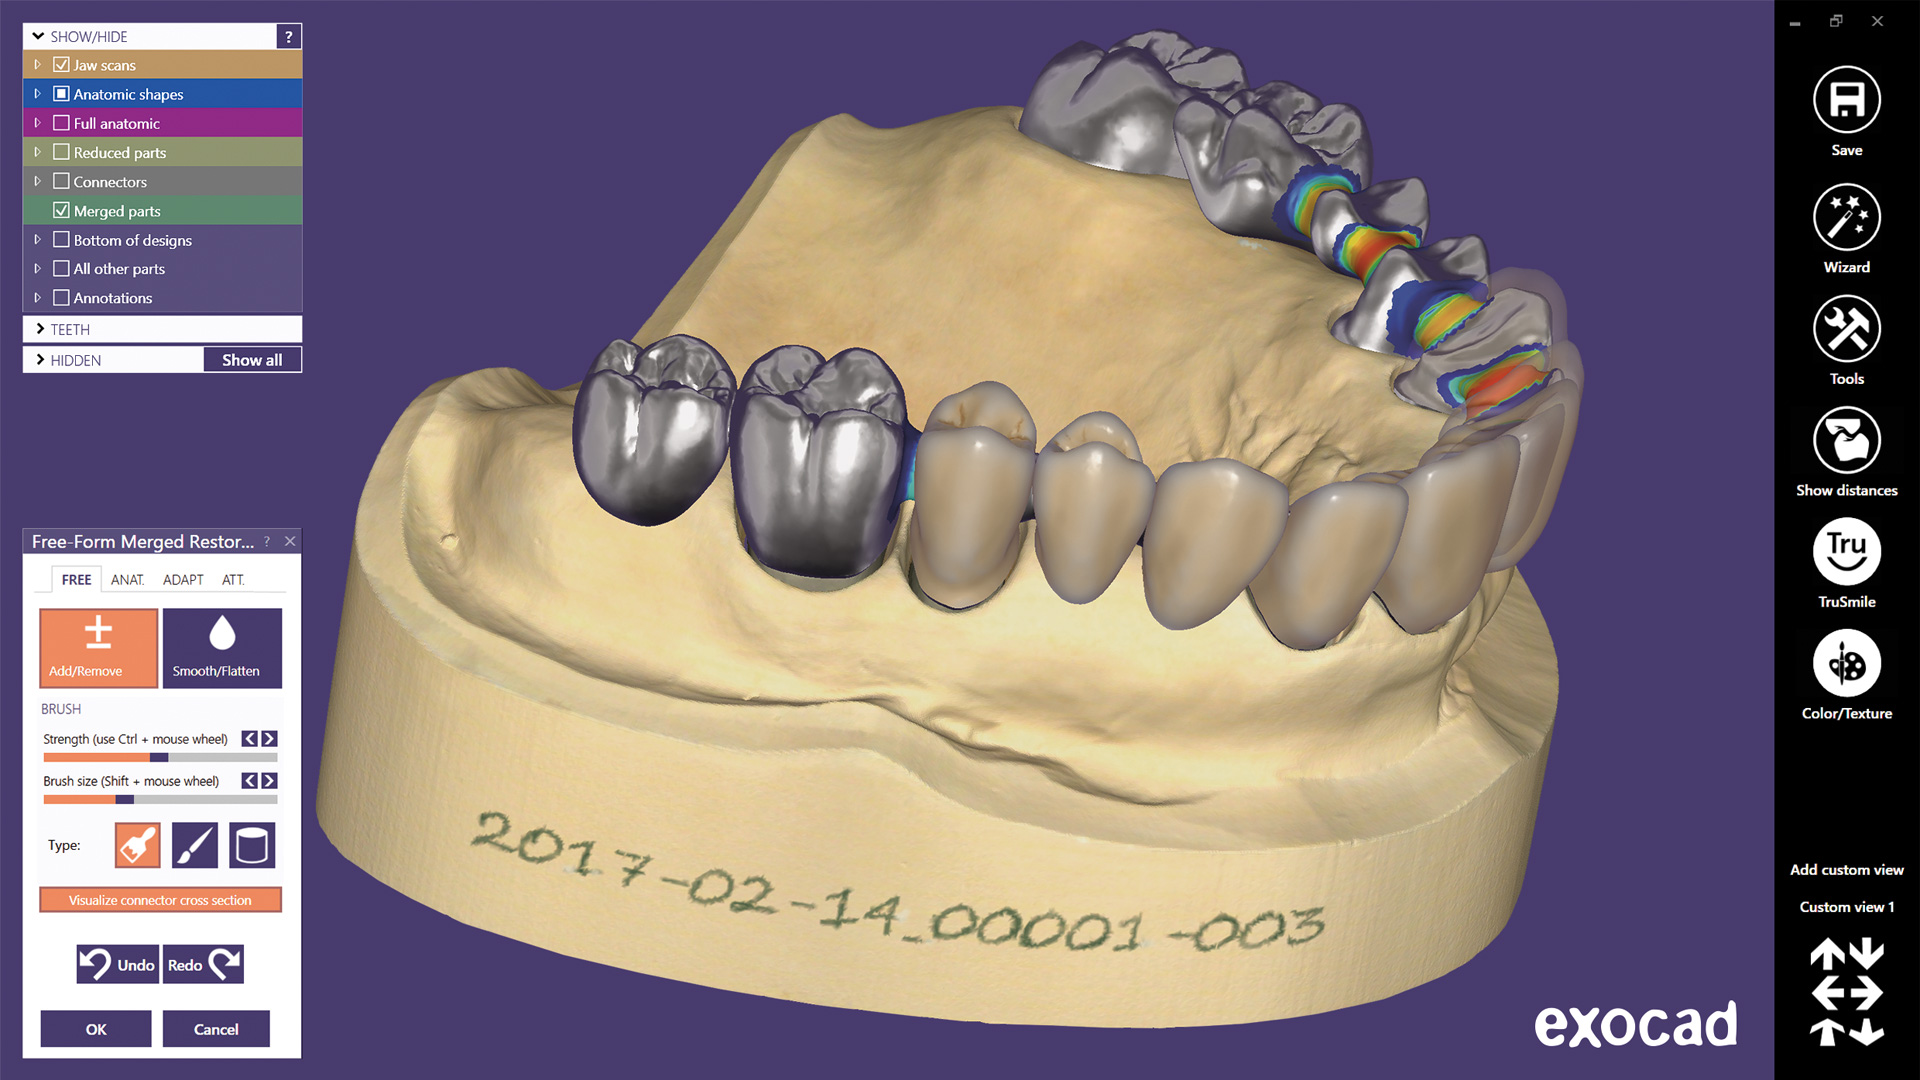 Screen shot - ExoCAD dental model